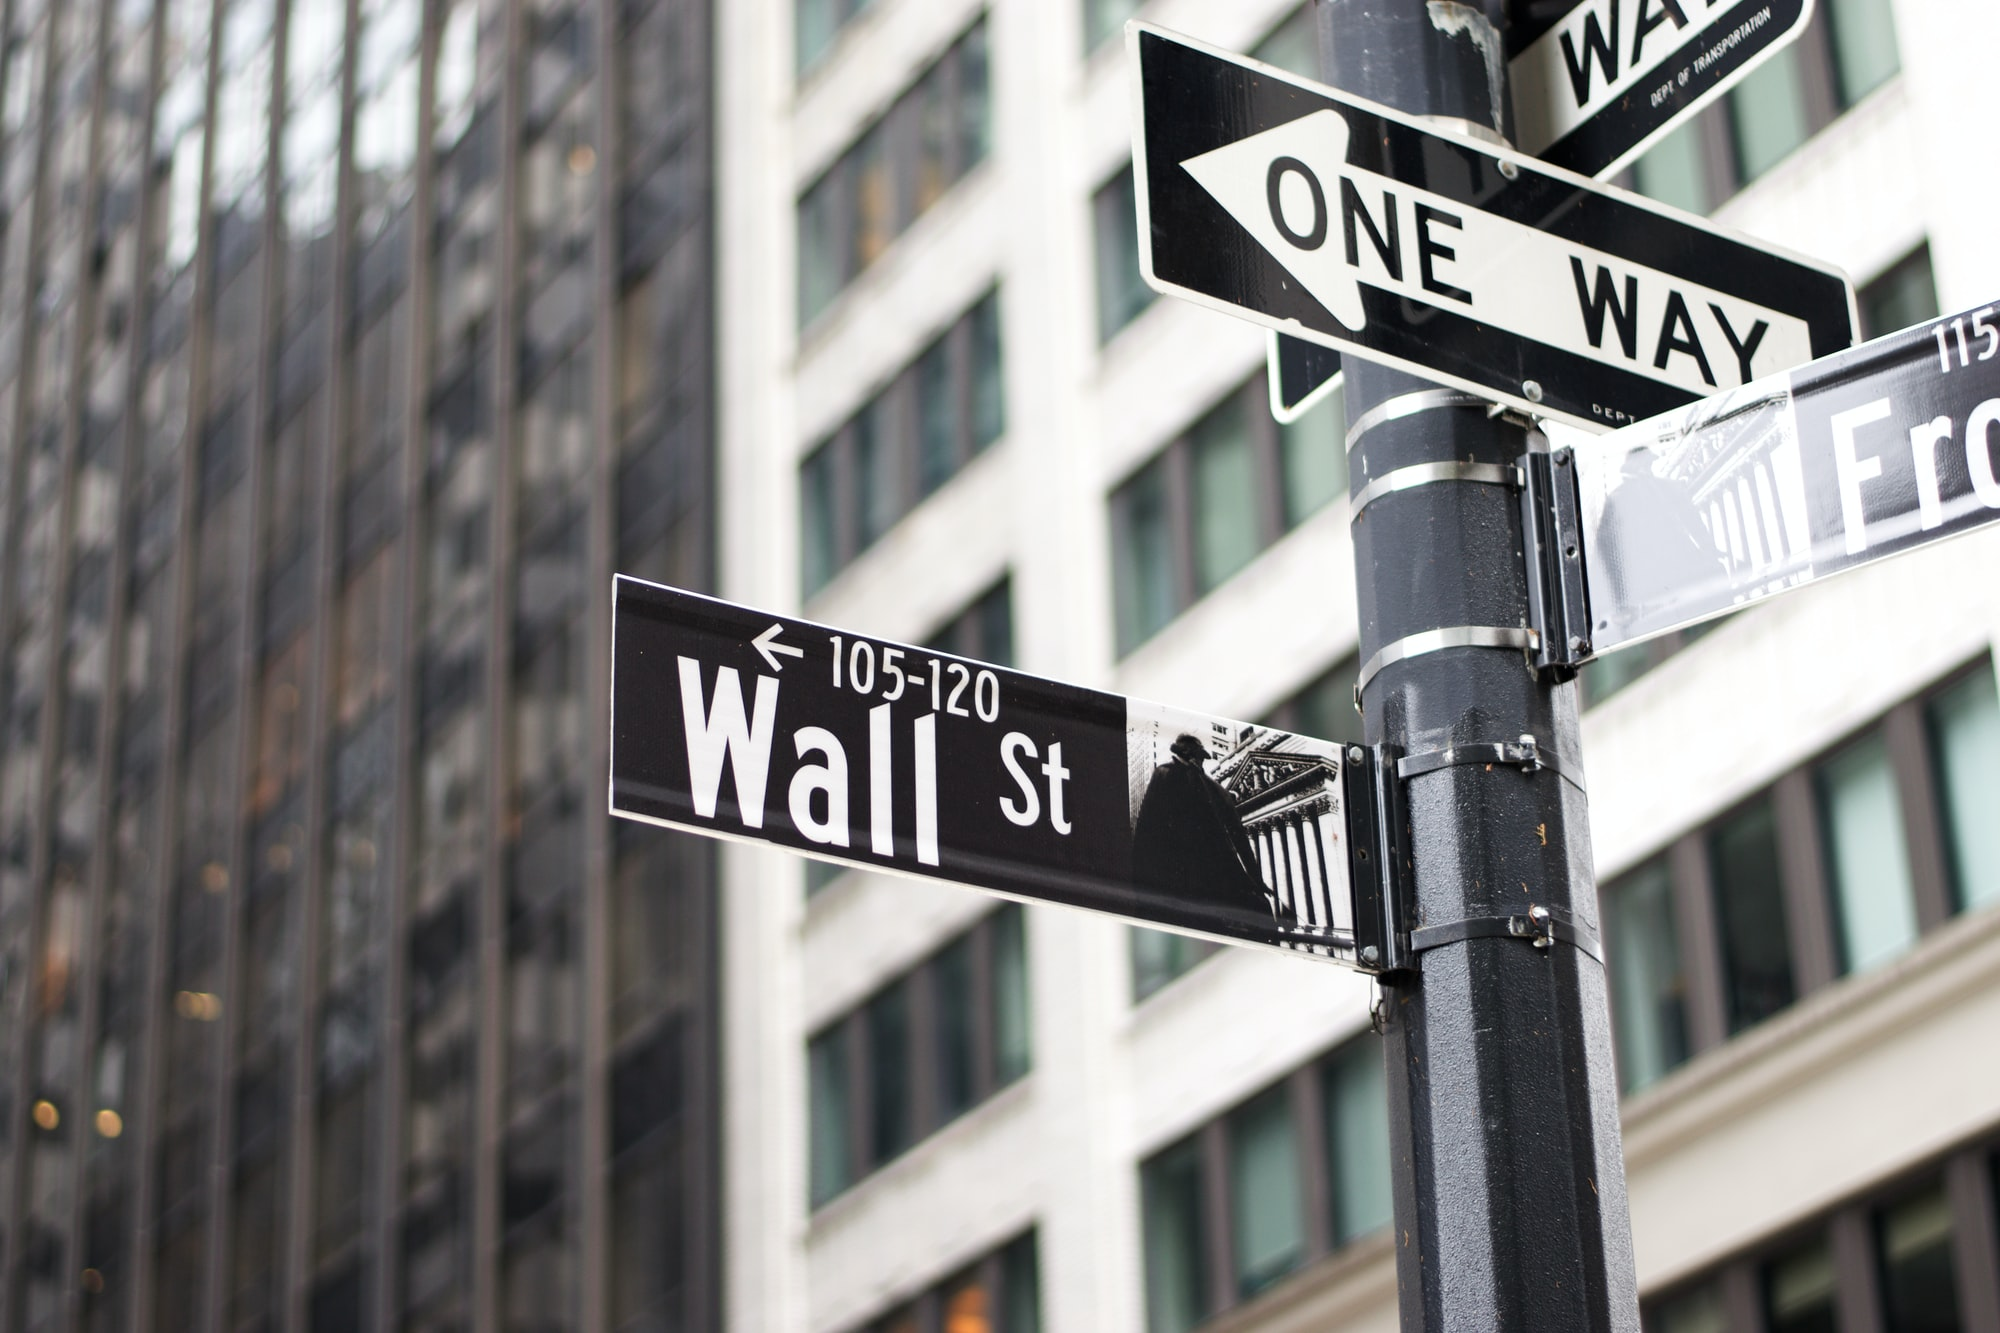 Welcome to Wall Street: Riskified goes public